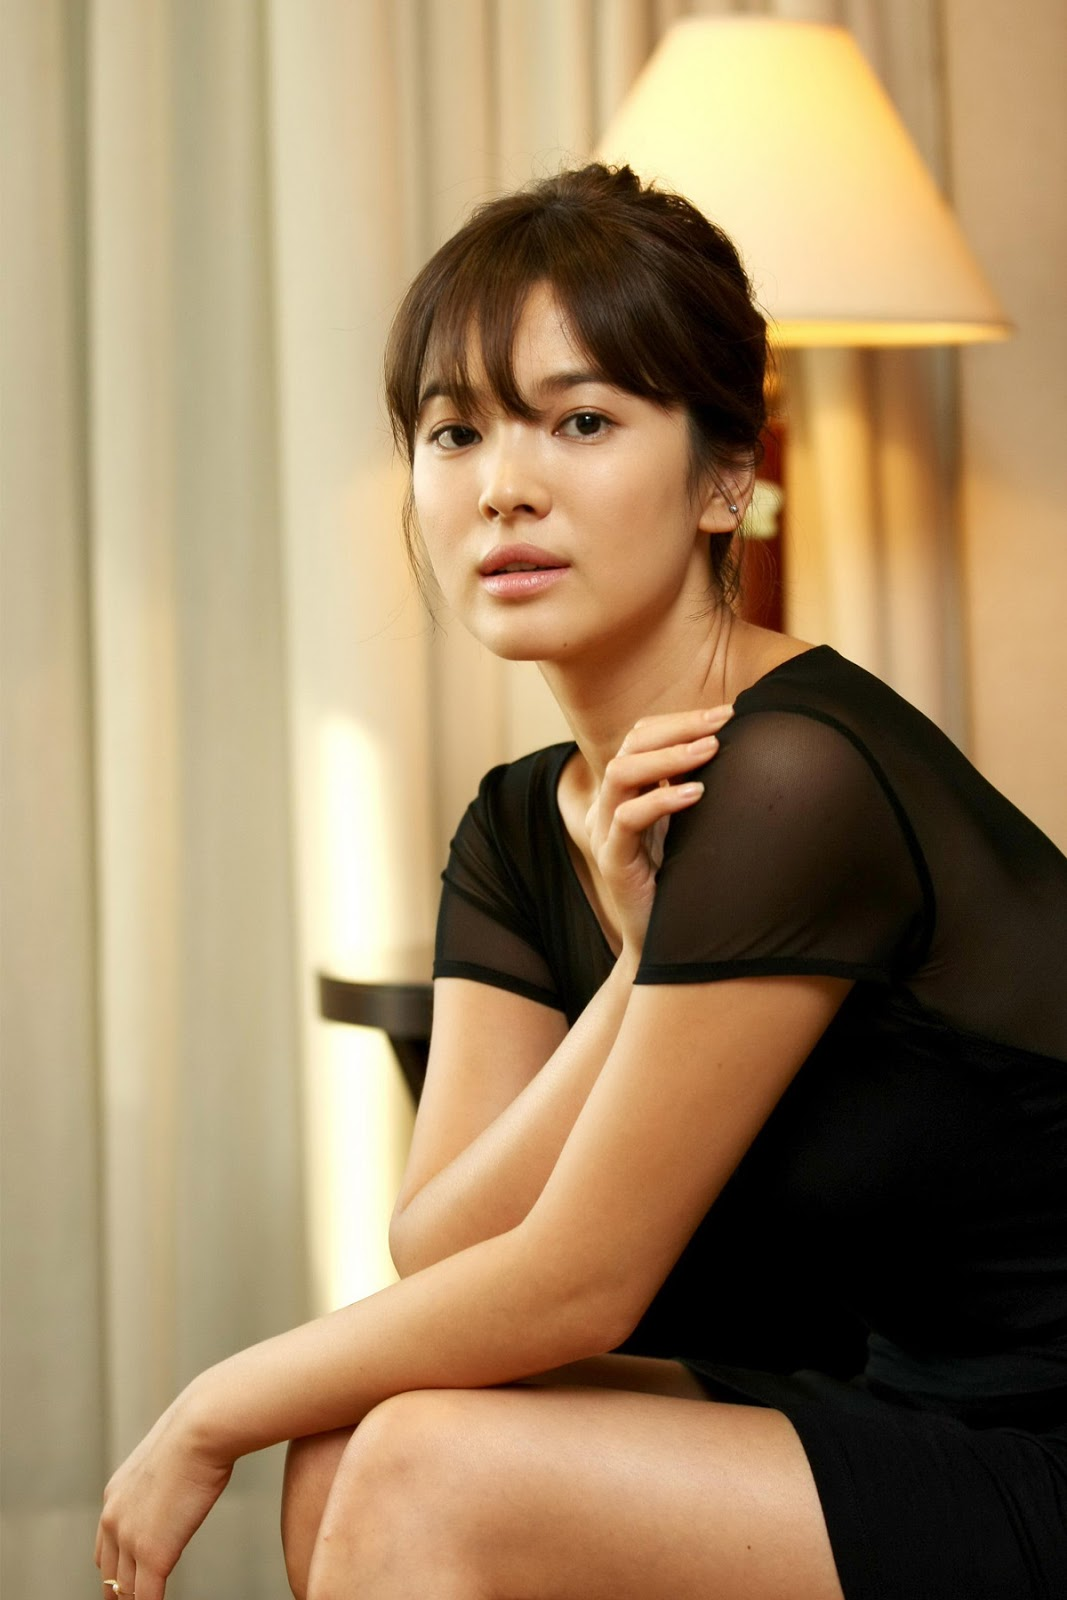 song hye kyo images - photo #24